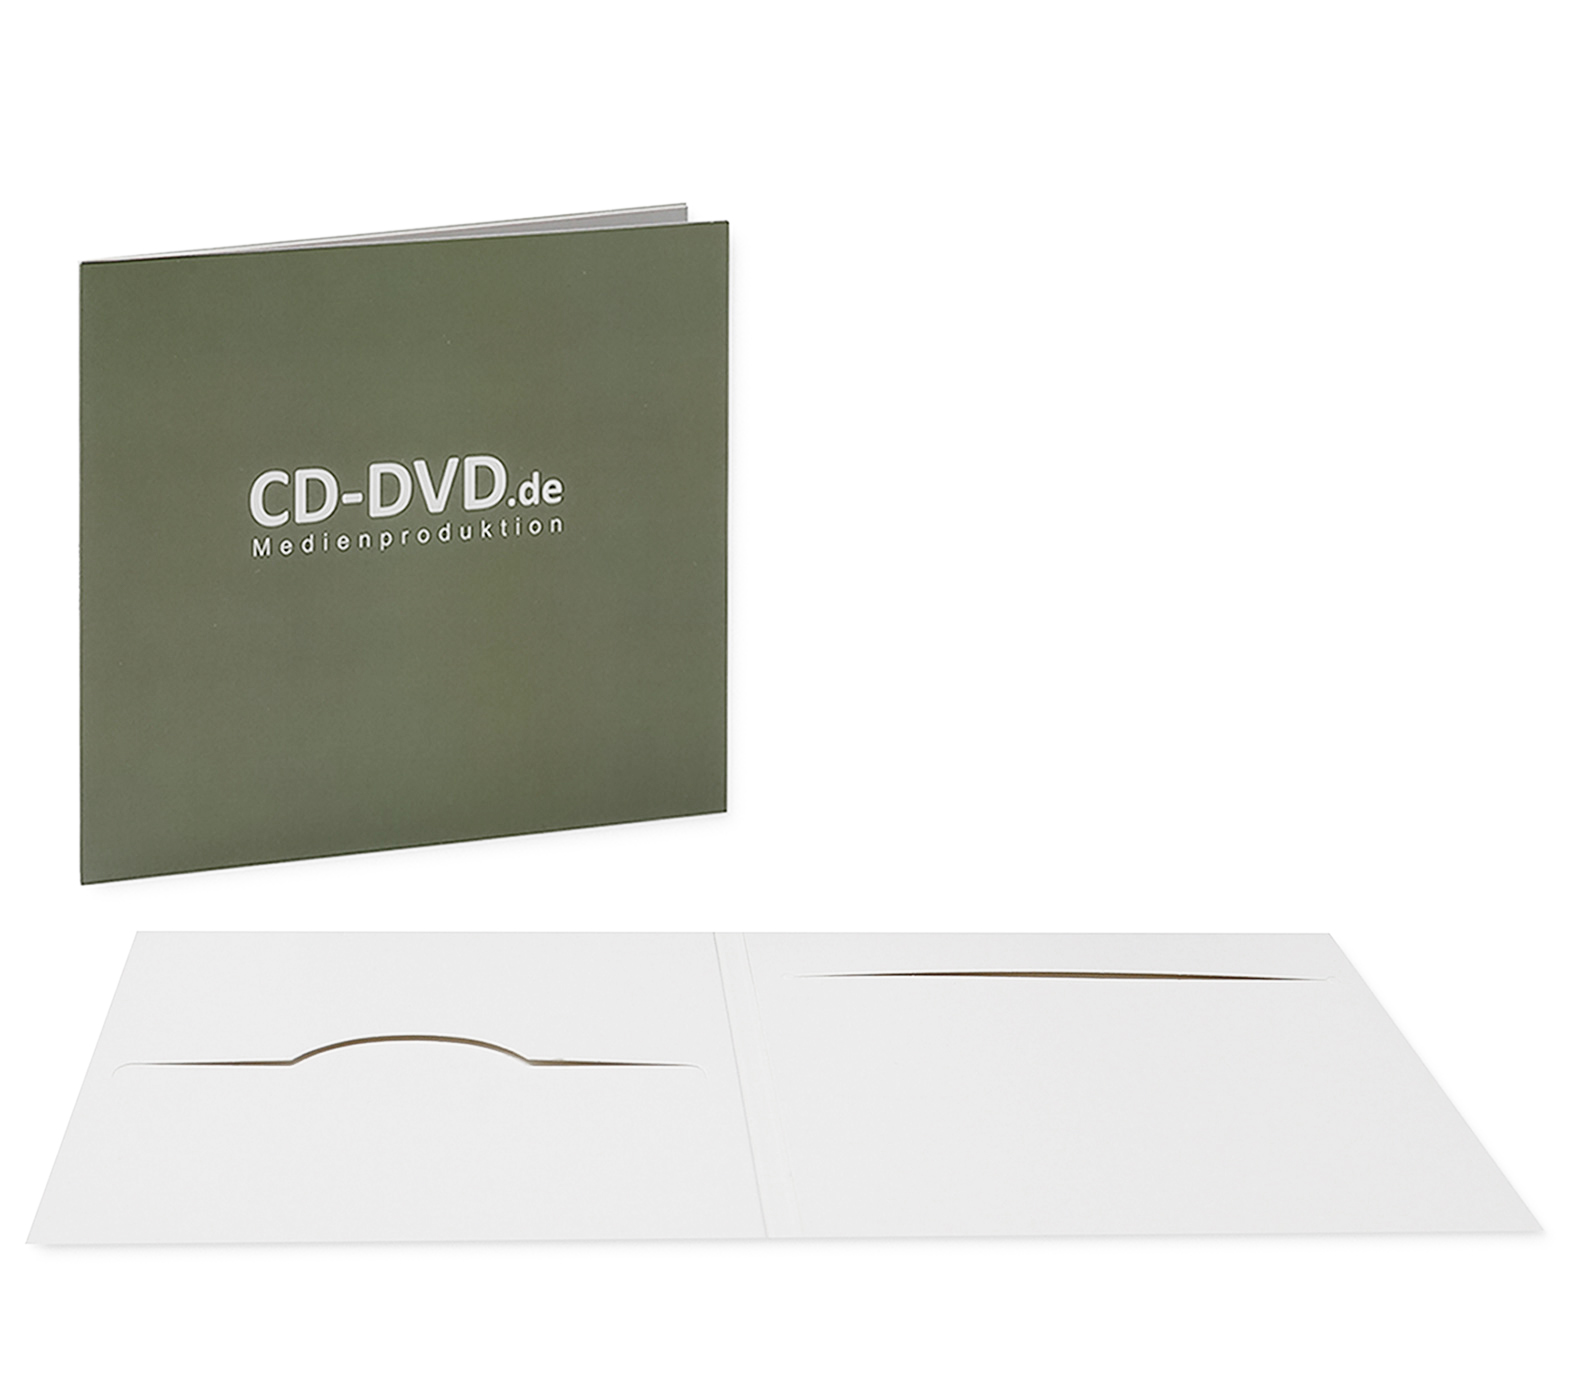 CD-DVD Digifile